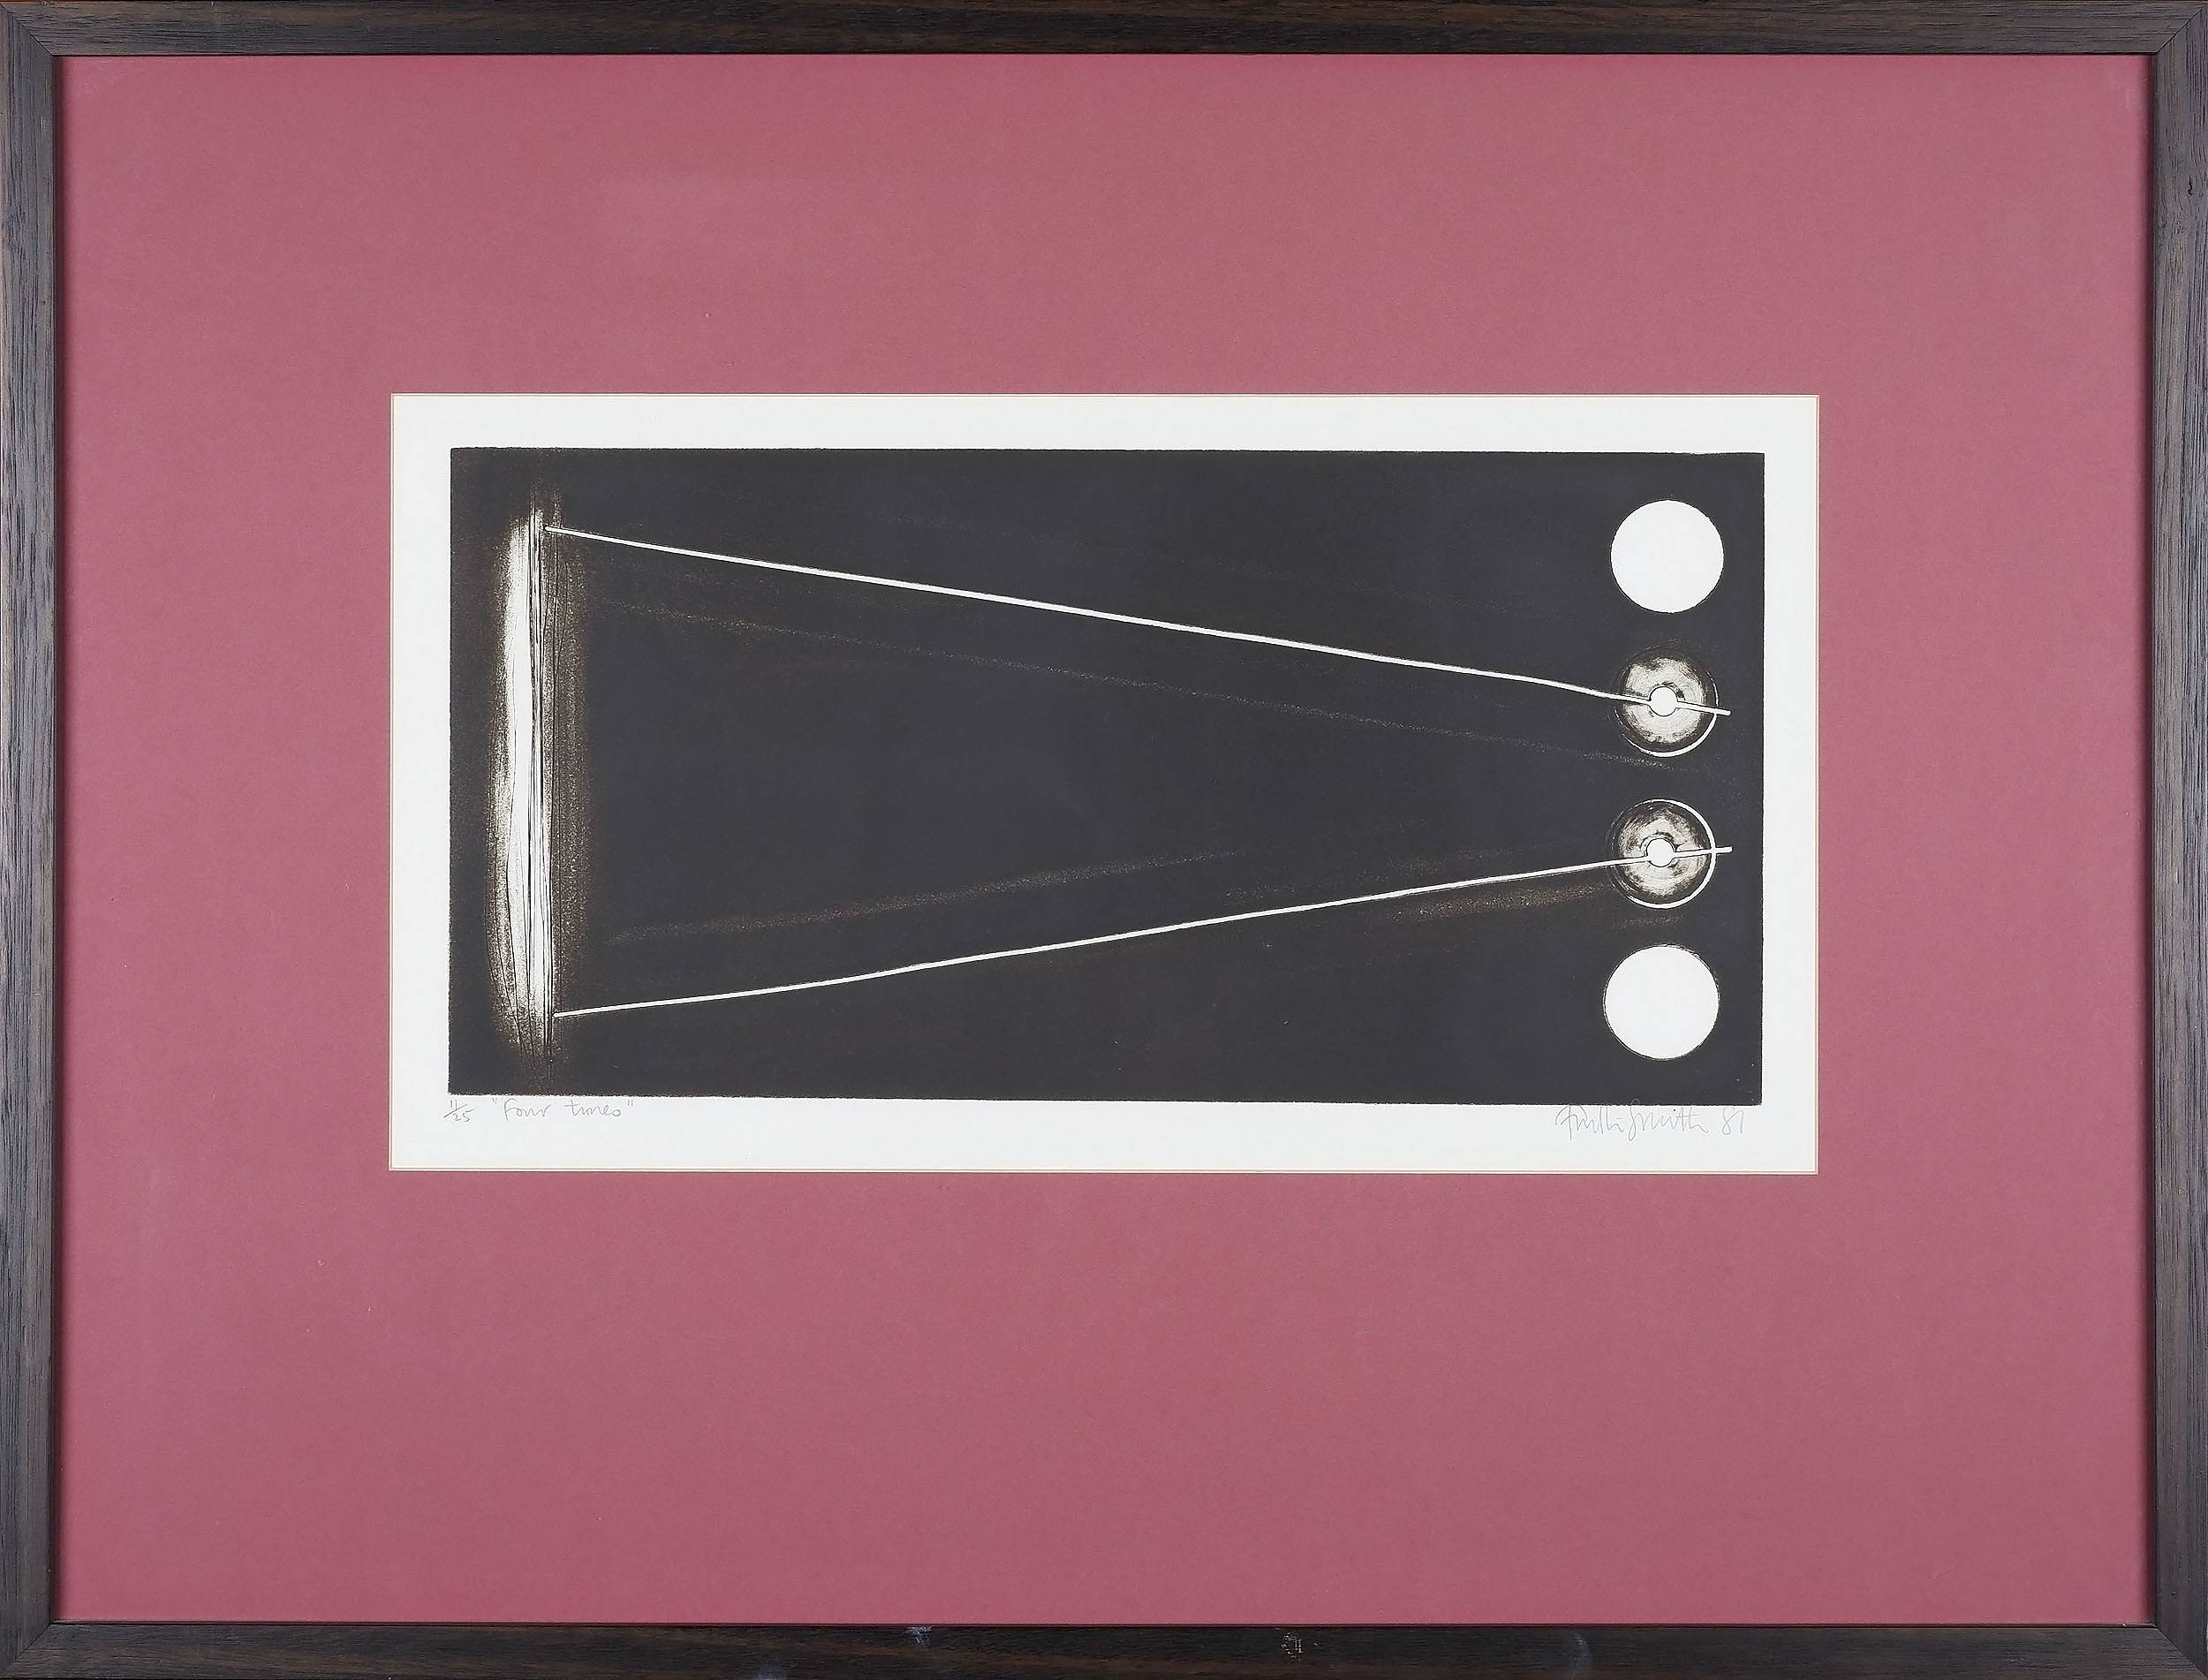 'John Firth-Smith (1943-) Four Tunes 1981 Etching 11/25'